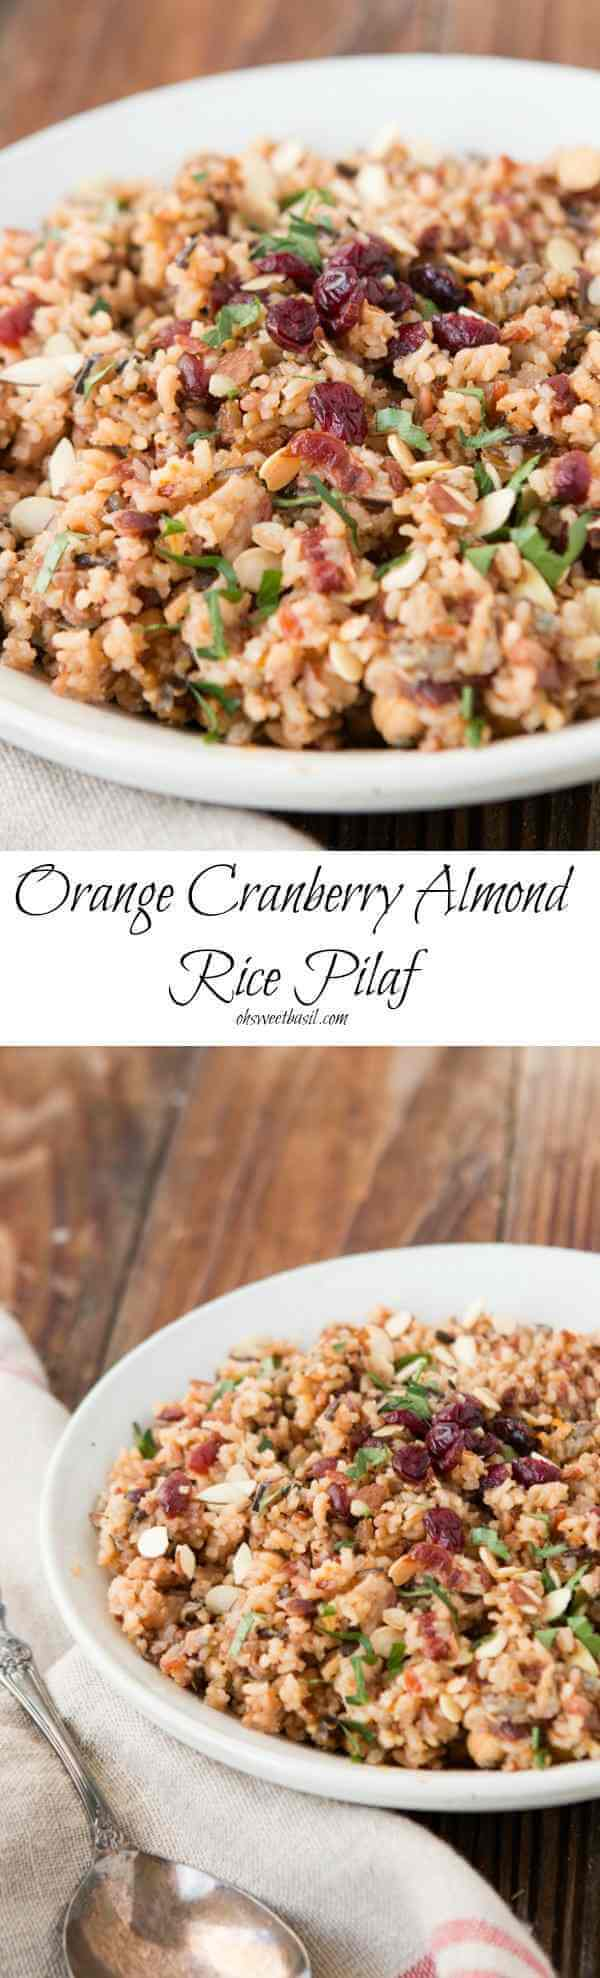 Want something better than plain rice for a side dish? Orange cranberry almond rice pilaf is my new favorite to serve my family especially guests!